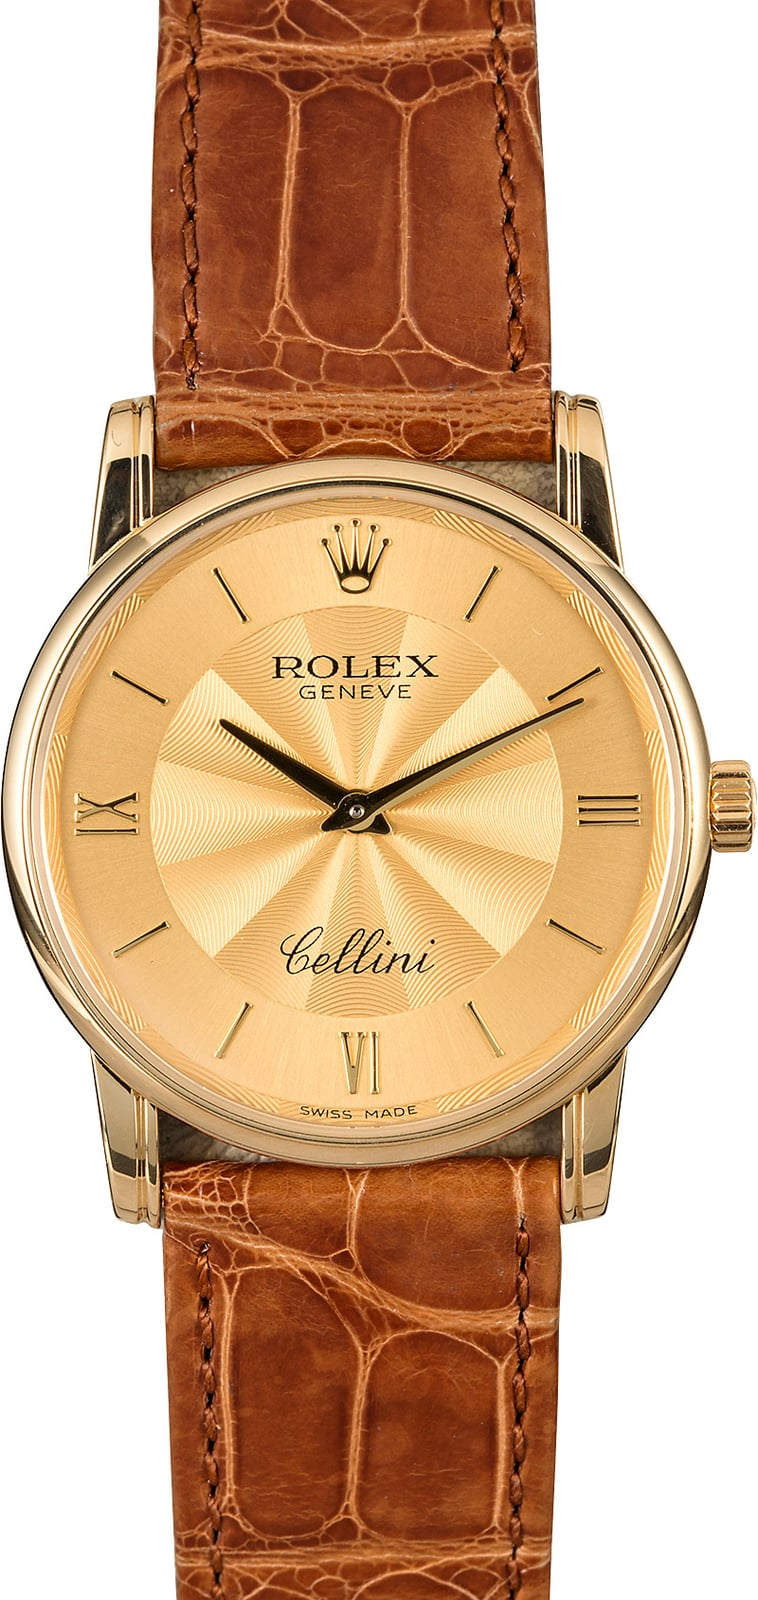 Rolex cellini 5116 champagne dial for Rolex cellini